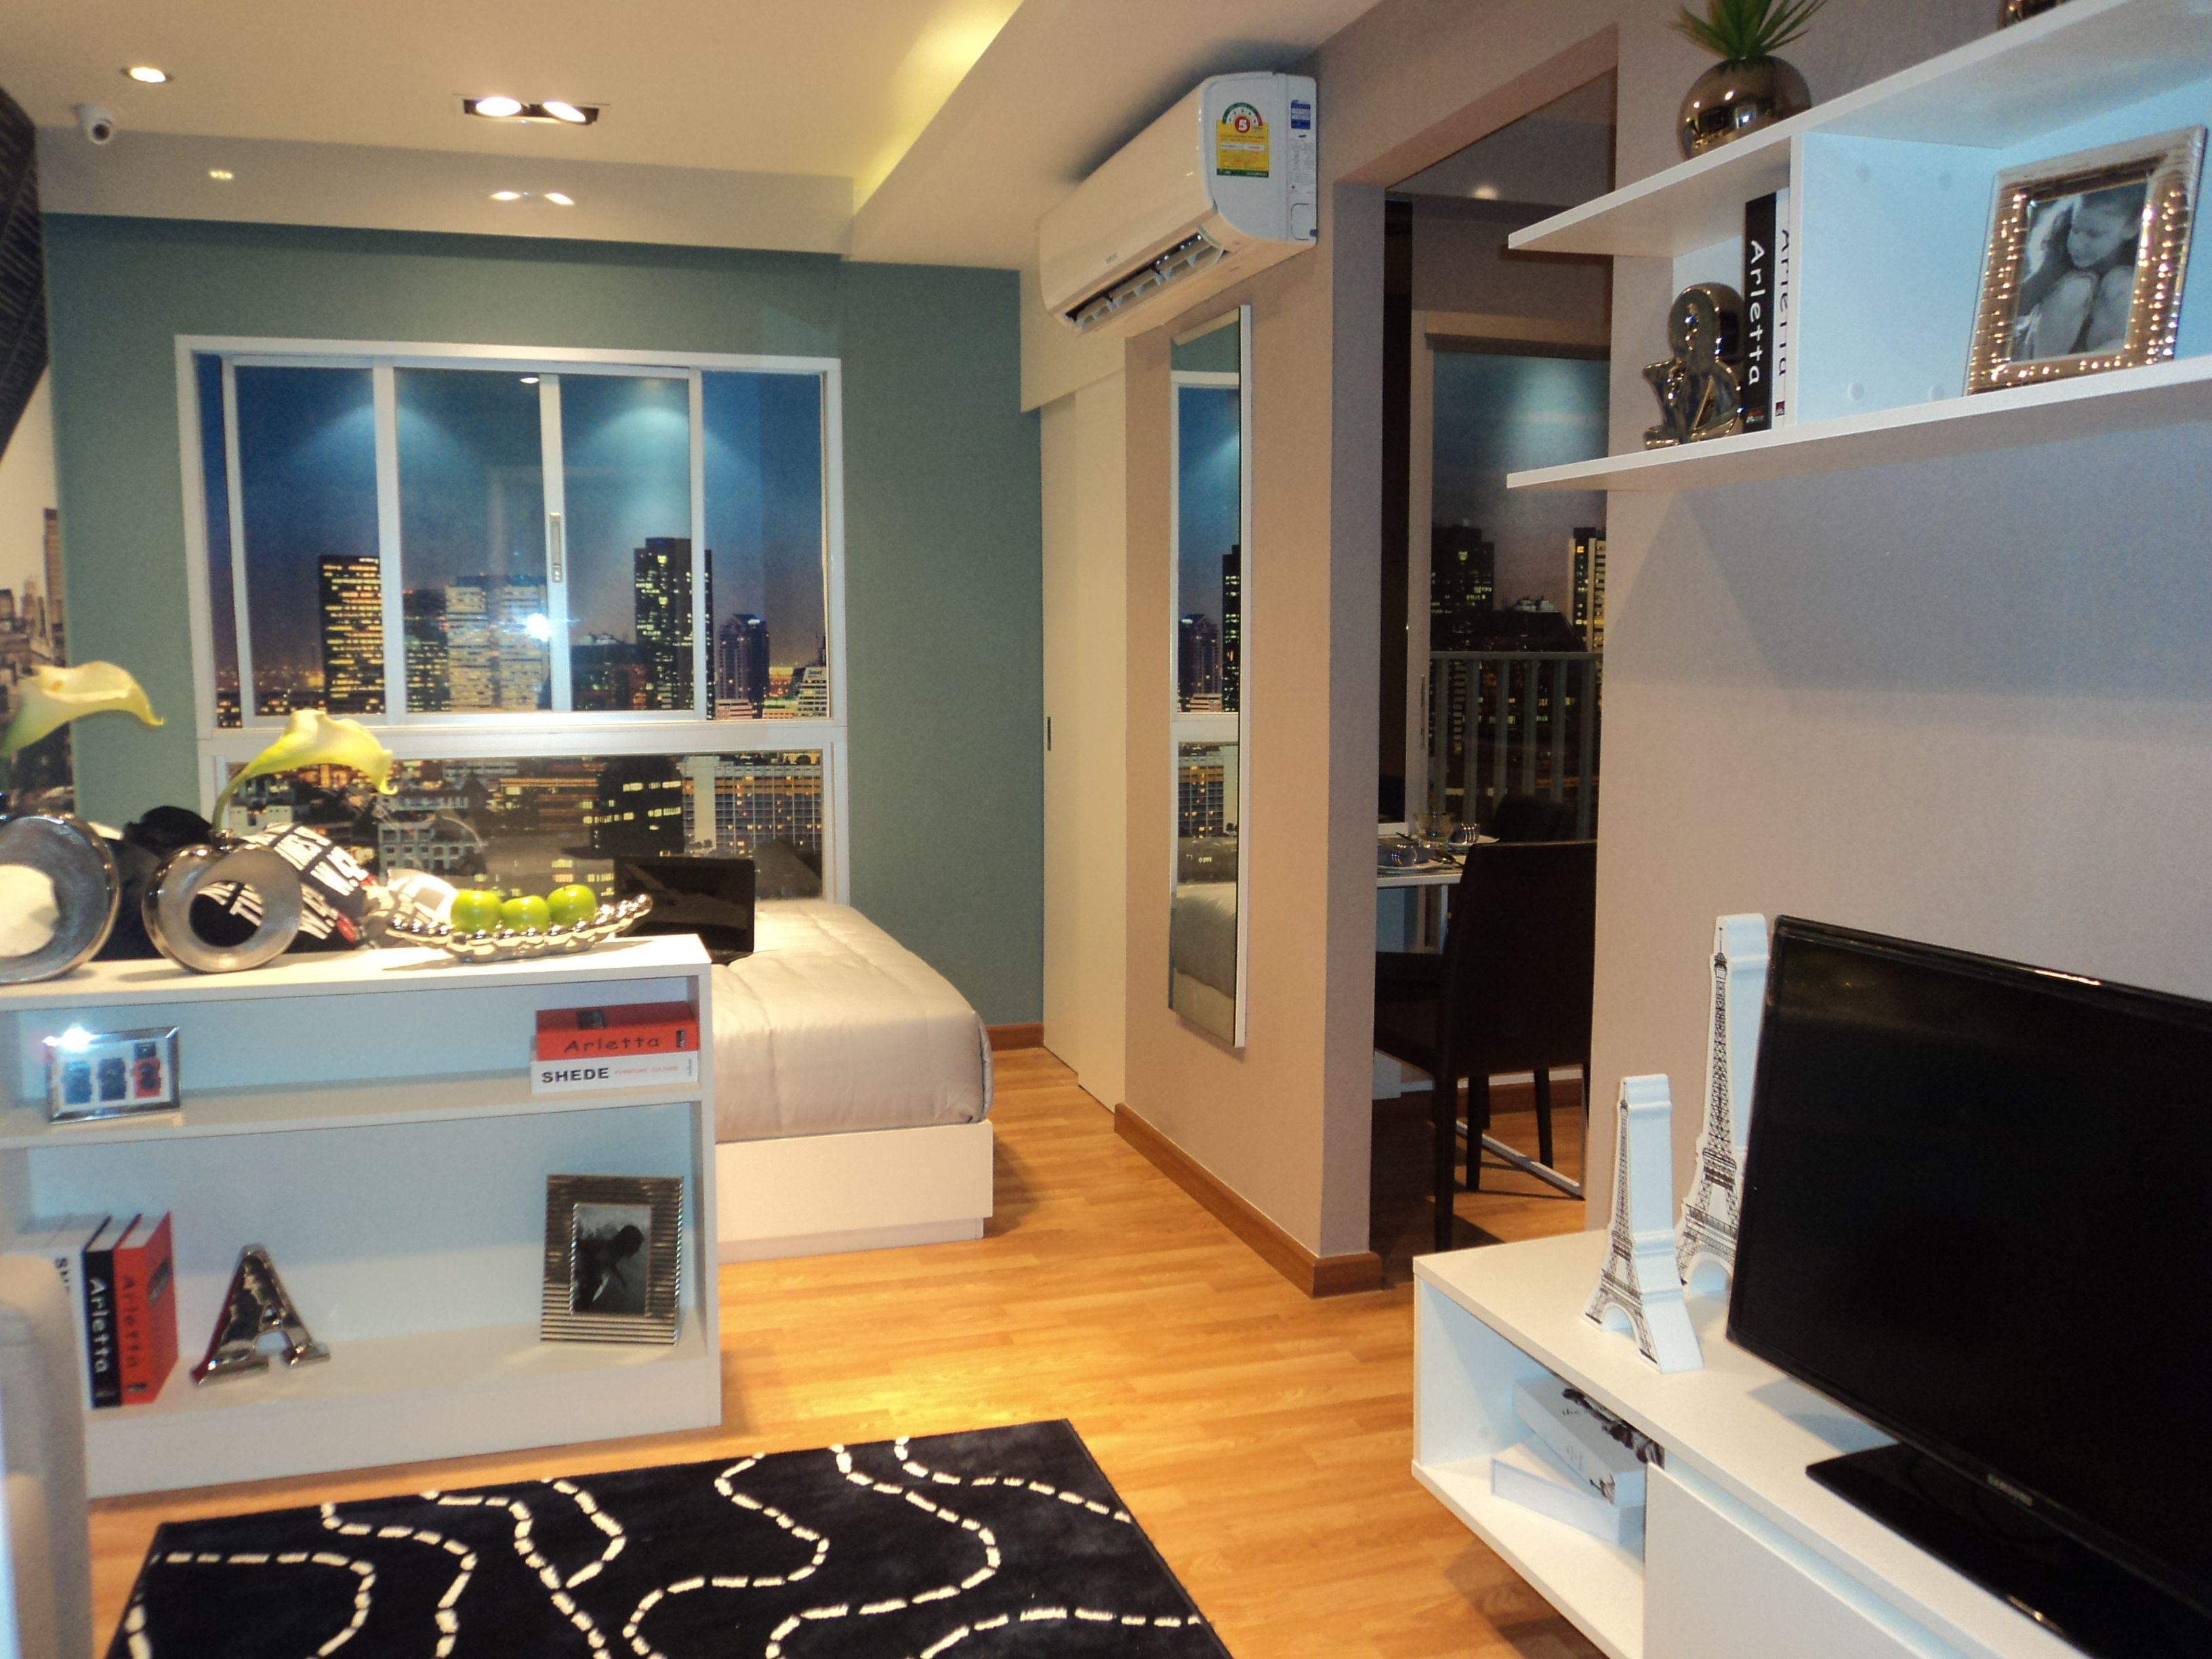 studio type apartment interior design ideas | design ...